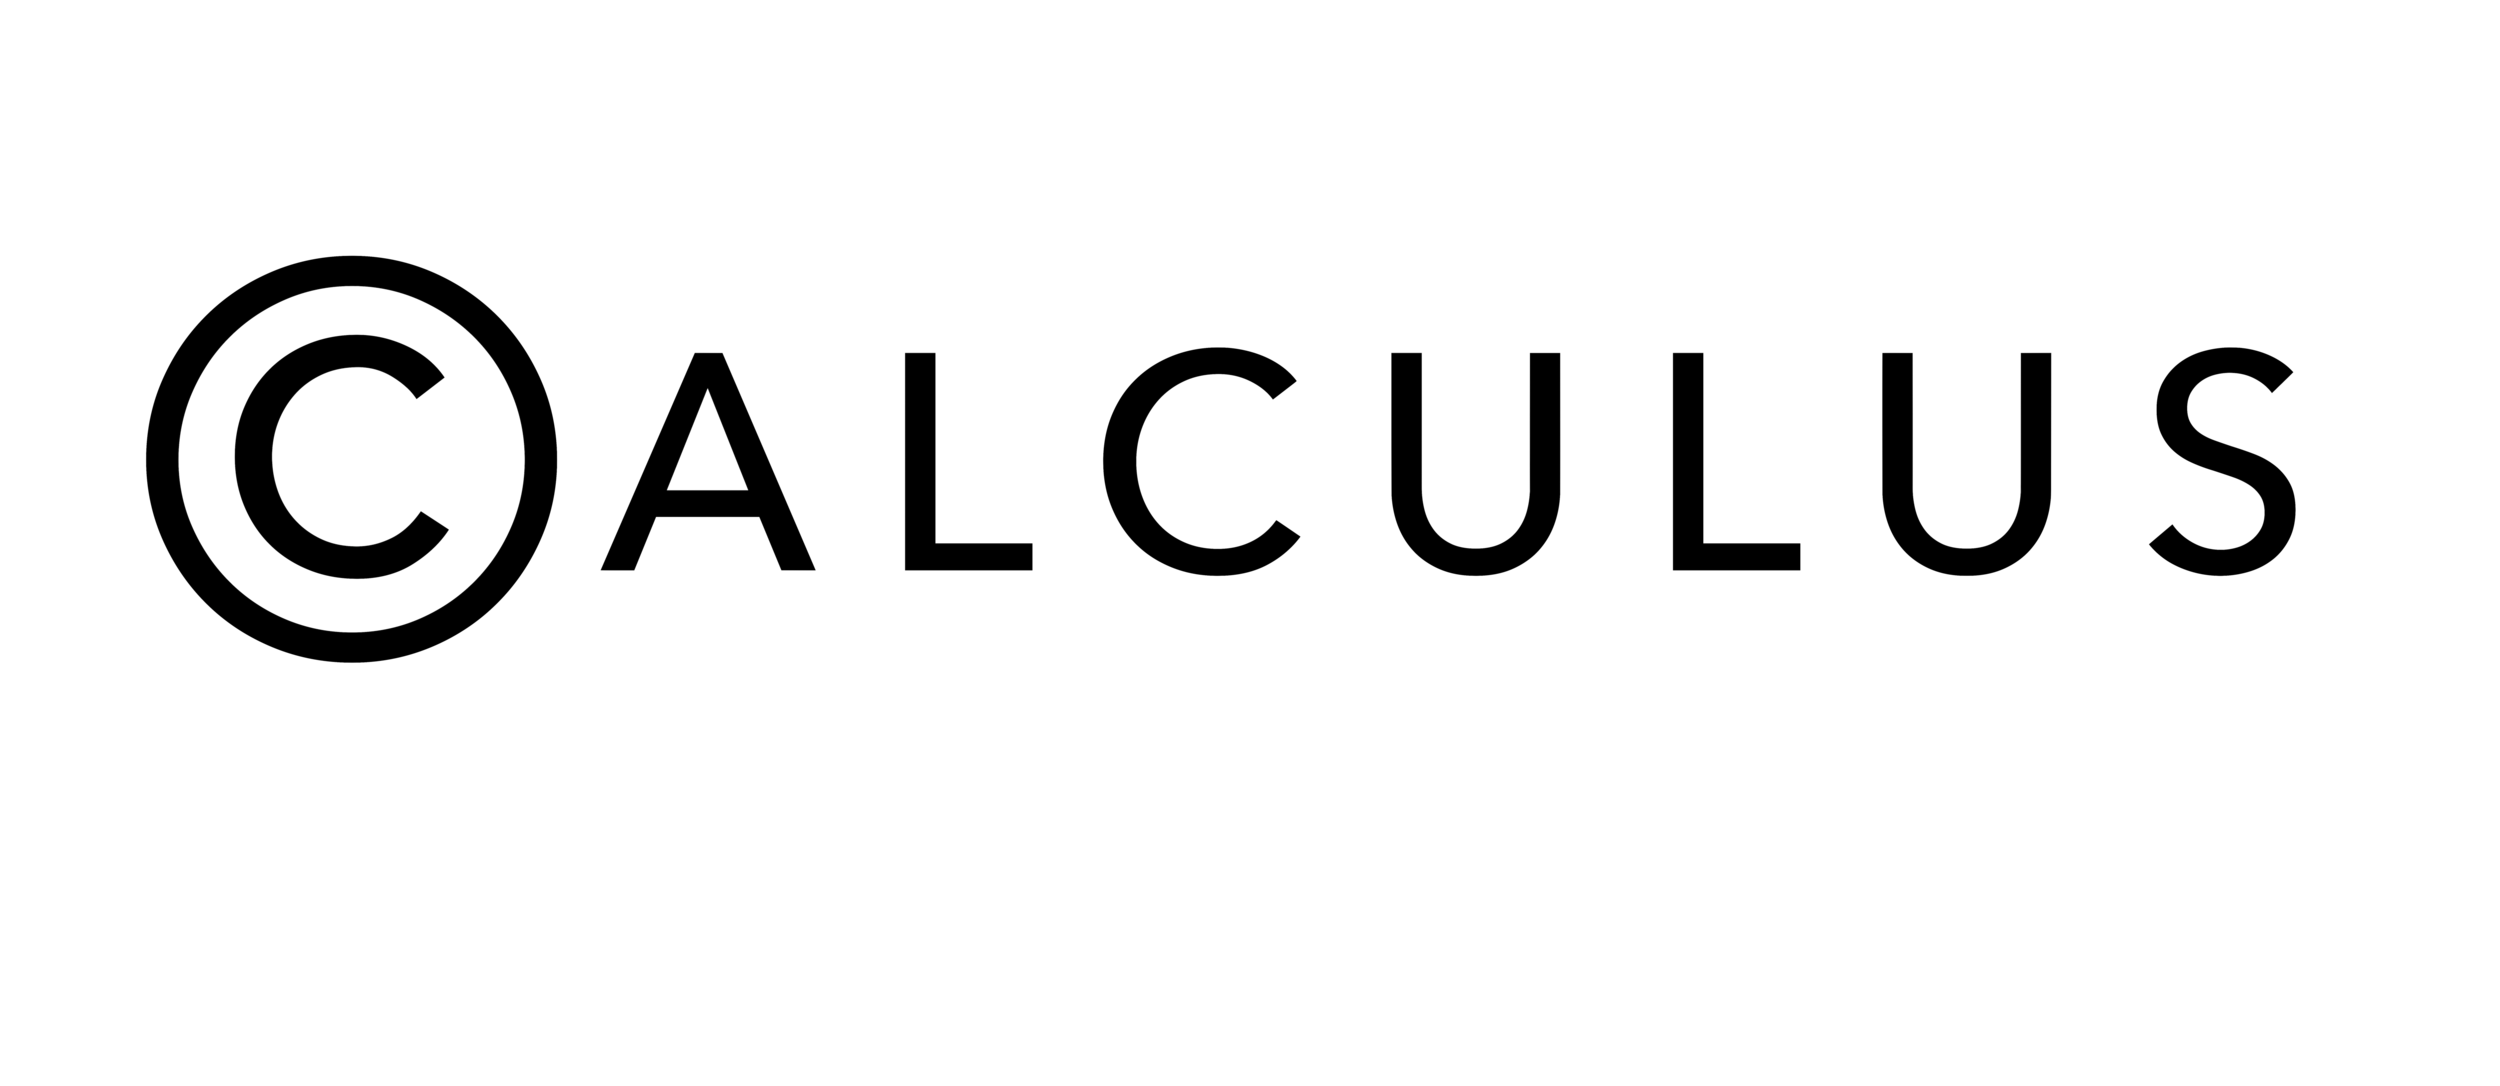 Calculus Logo Small.png